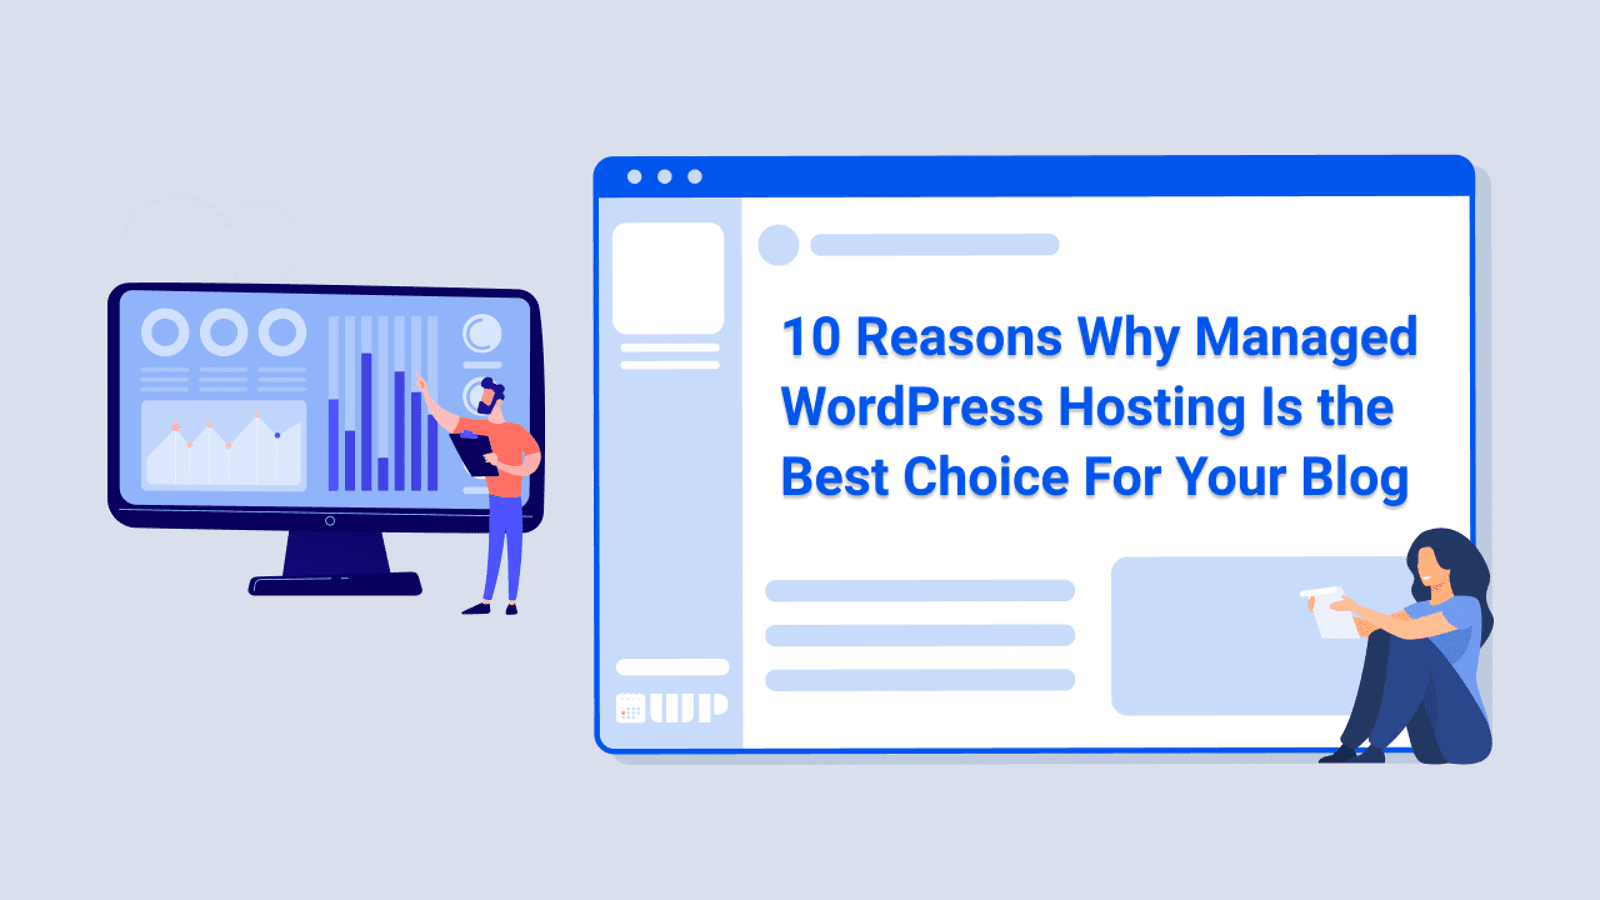 10 Reasons Why Managed WordPress Hosting Is the Best Choice For Your Blog